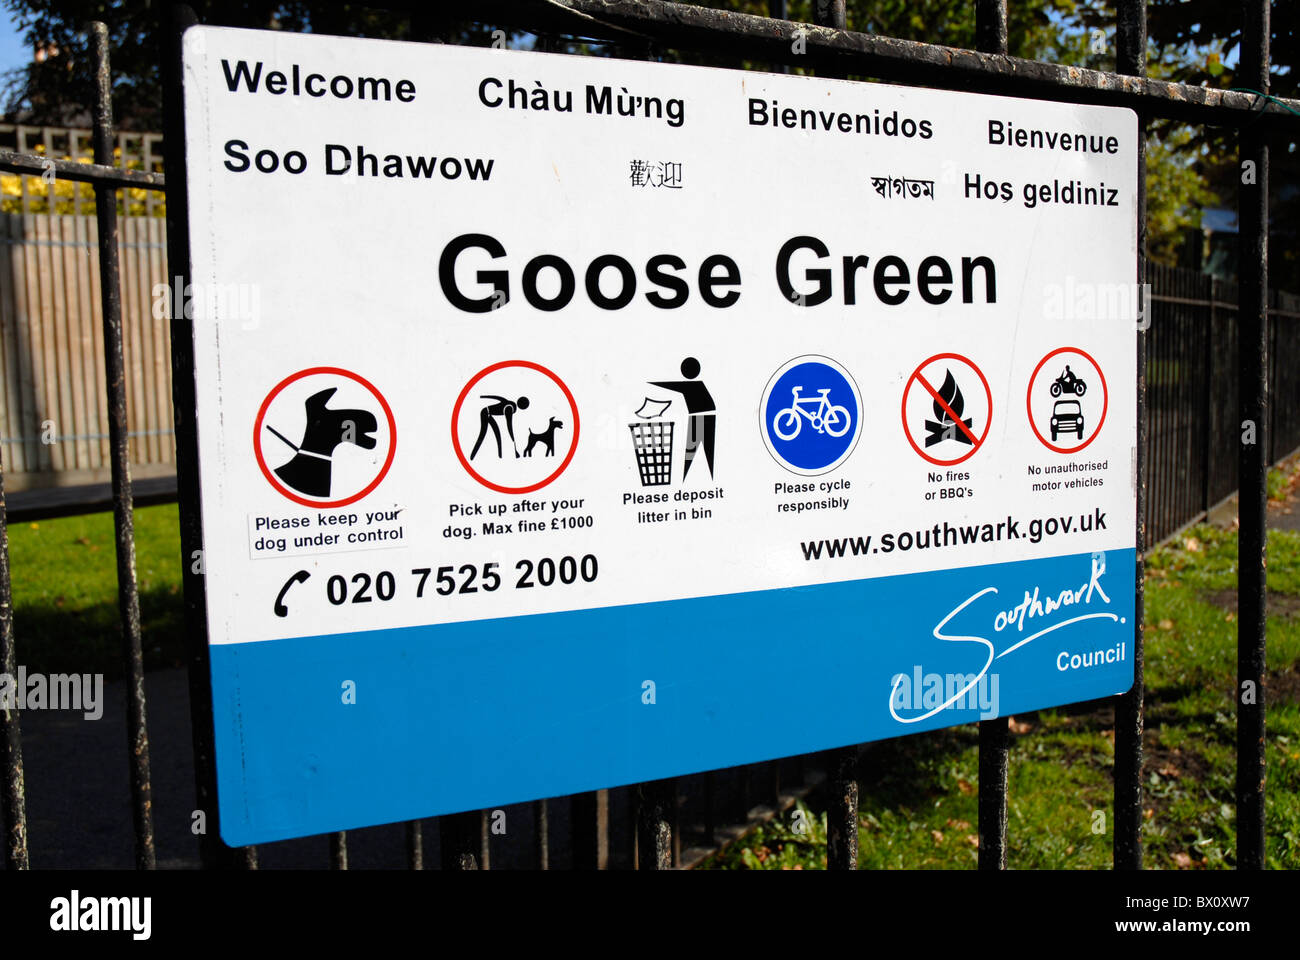 Sign in several languages in Southwark South London - Stock Image